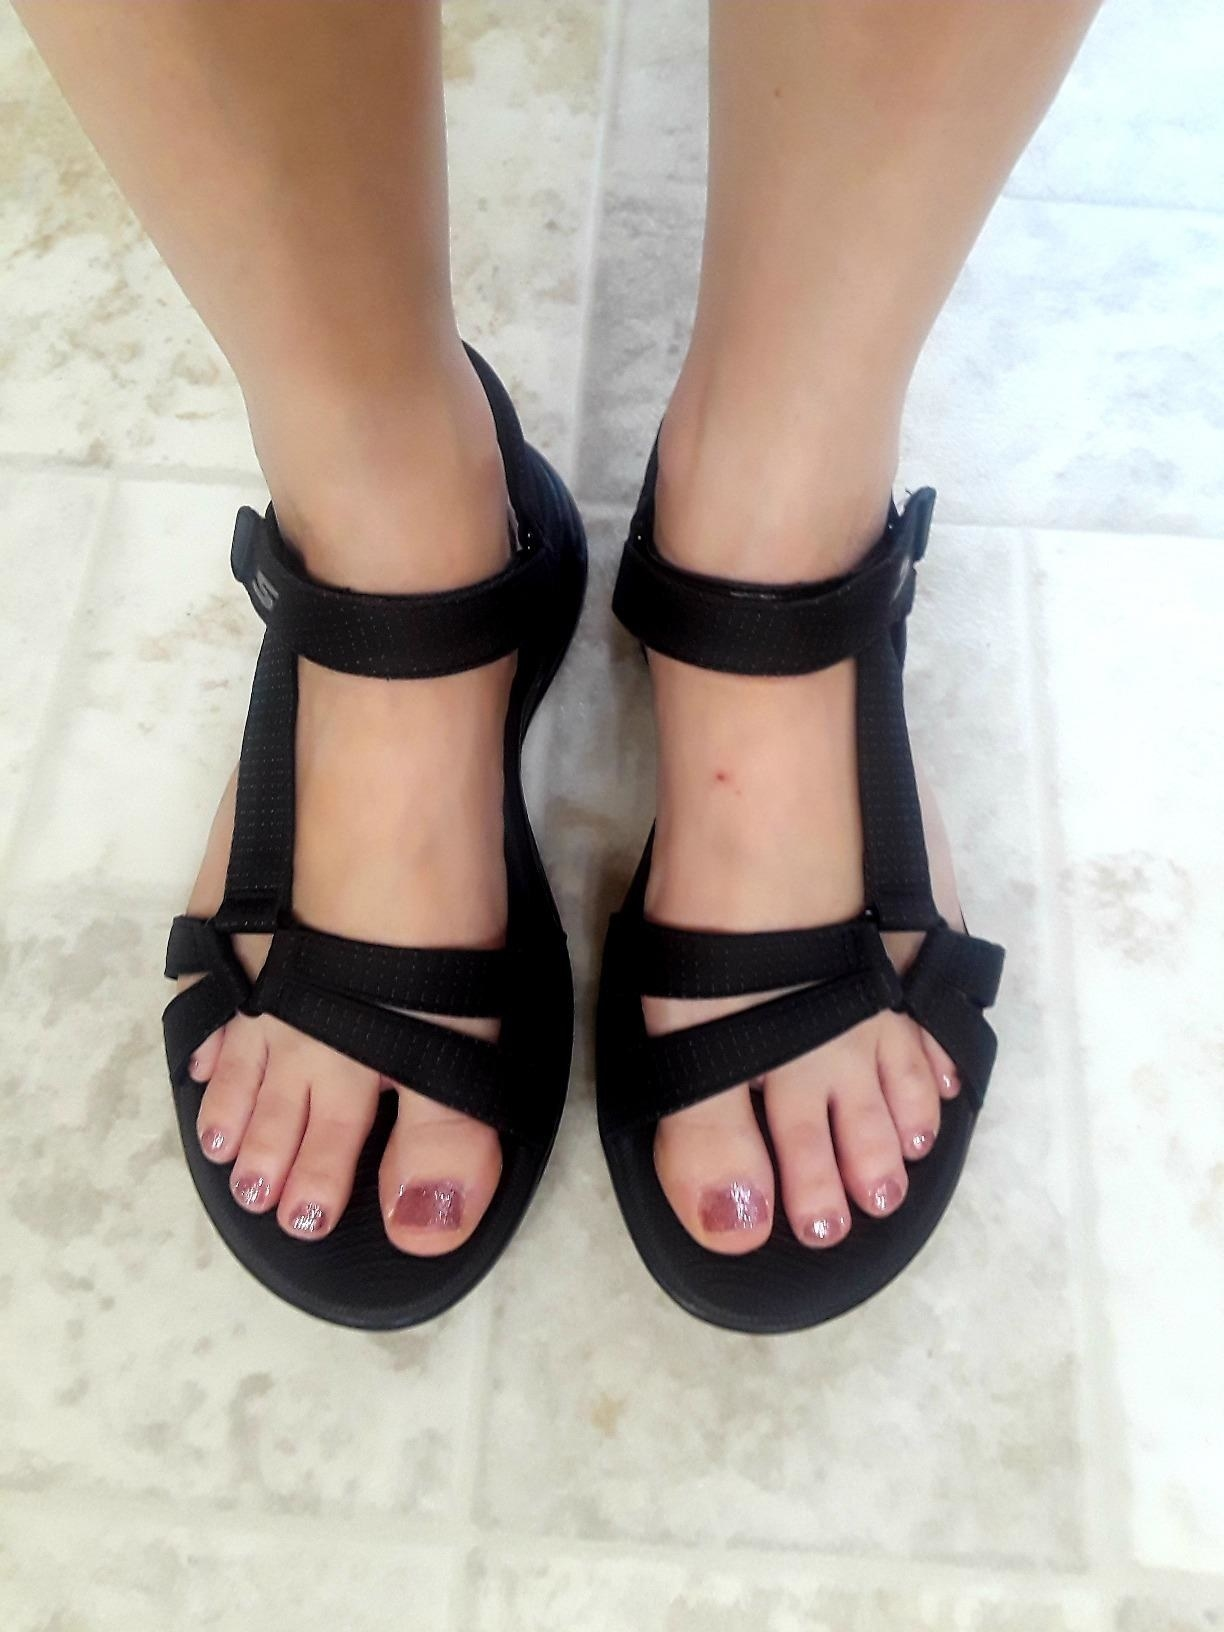 reviewer wears strappy black sandals